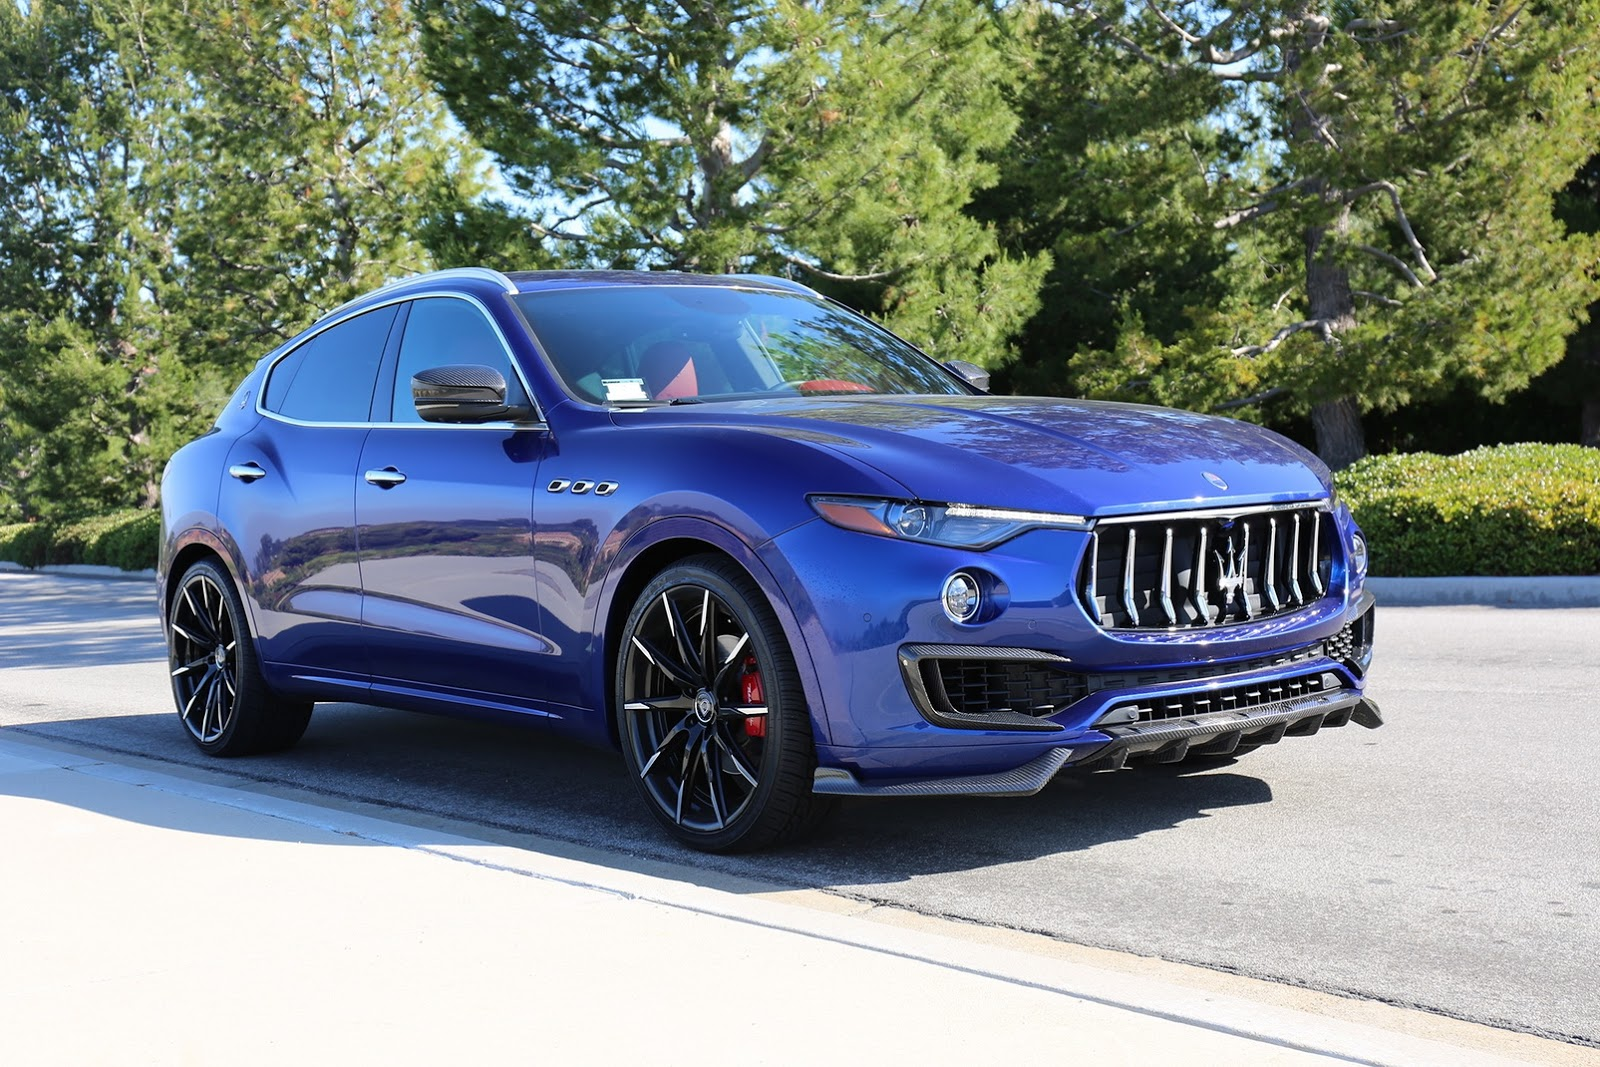 Maserati Levante by Larte Design (1)